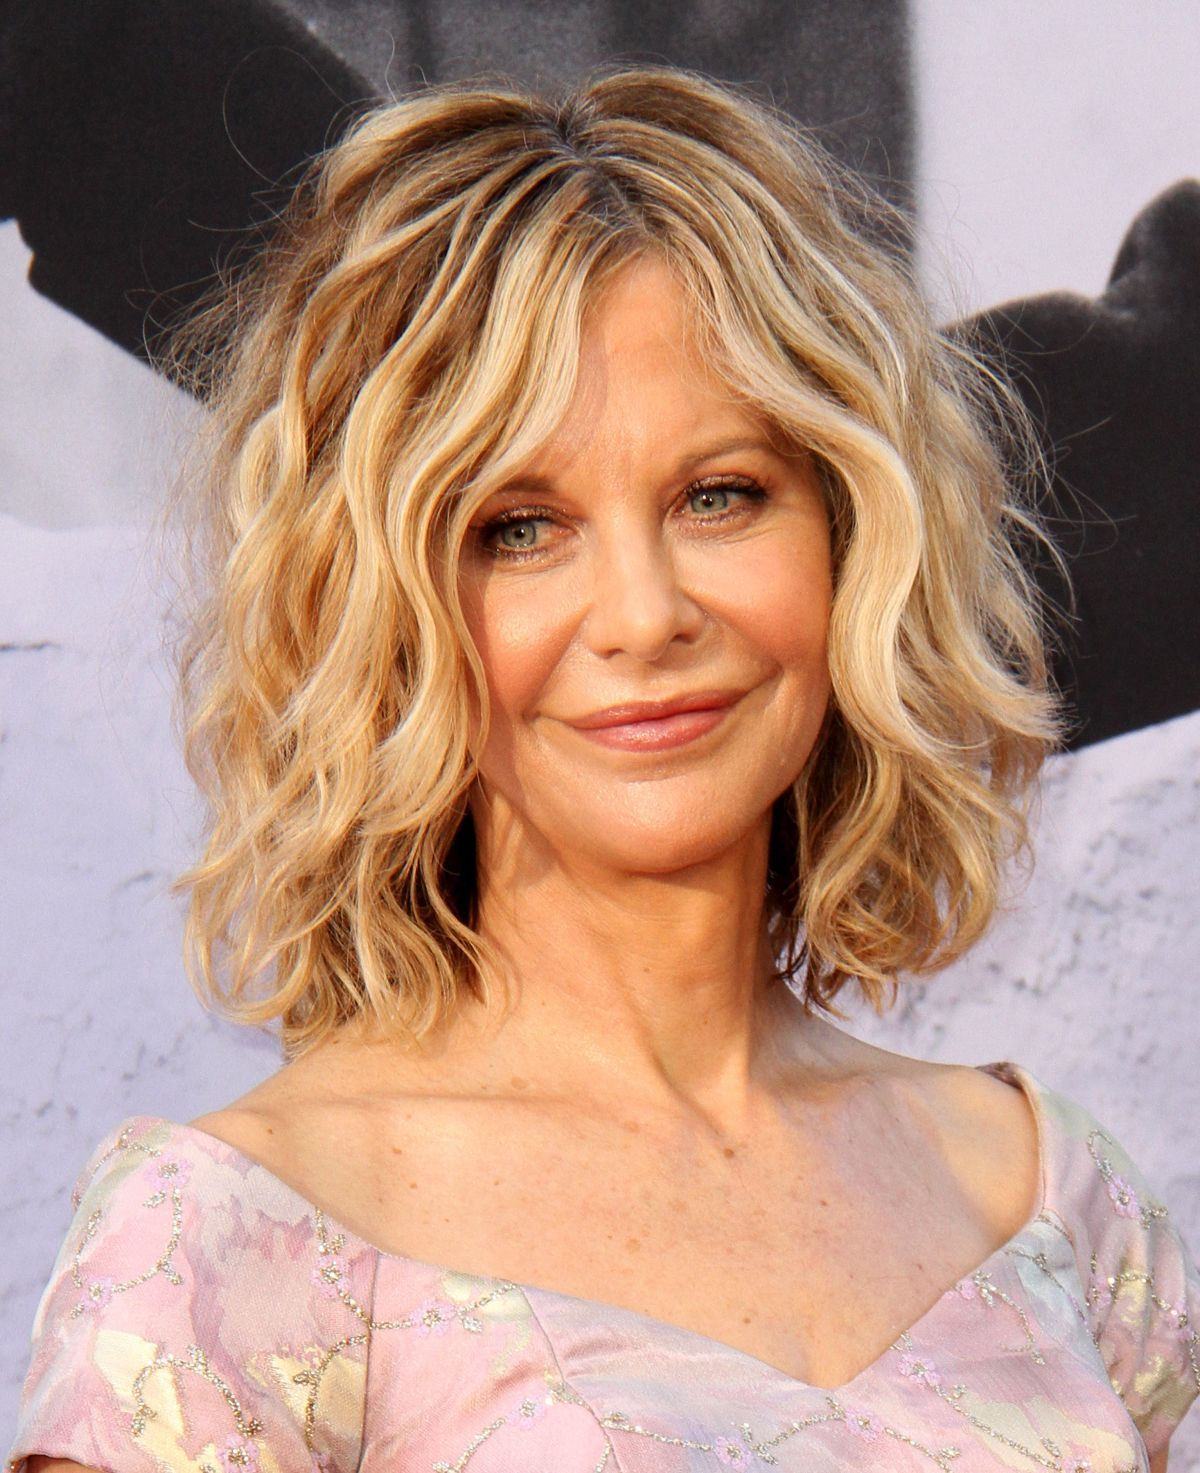 Loved Her Hair Like This Why Cant I Meg Ryan Short Braided